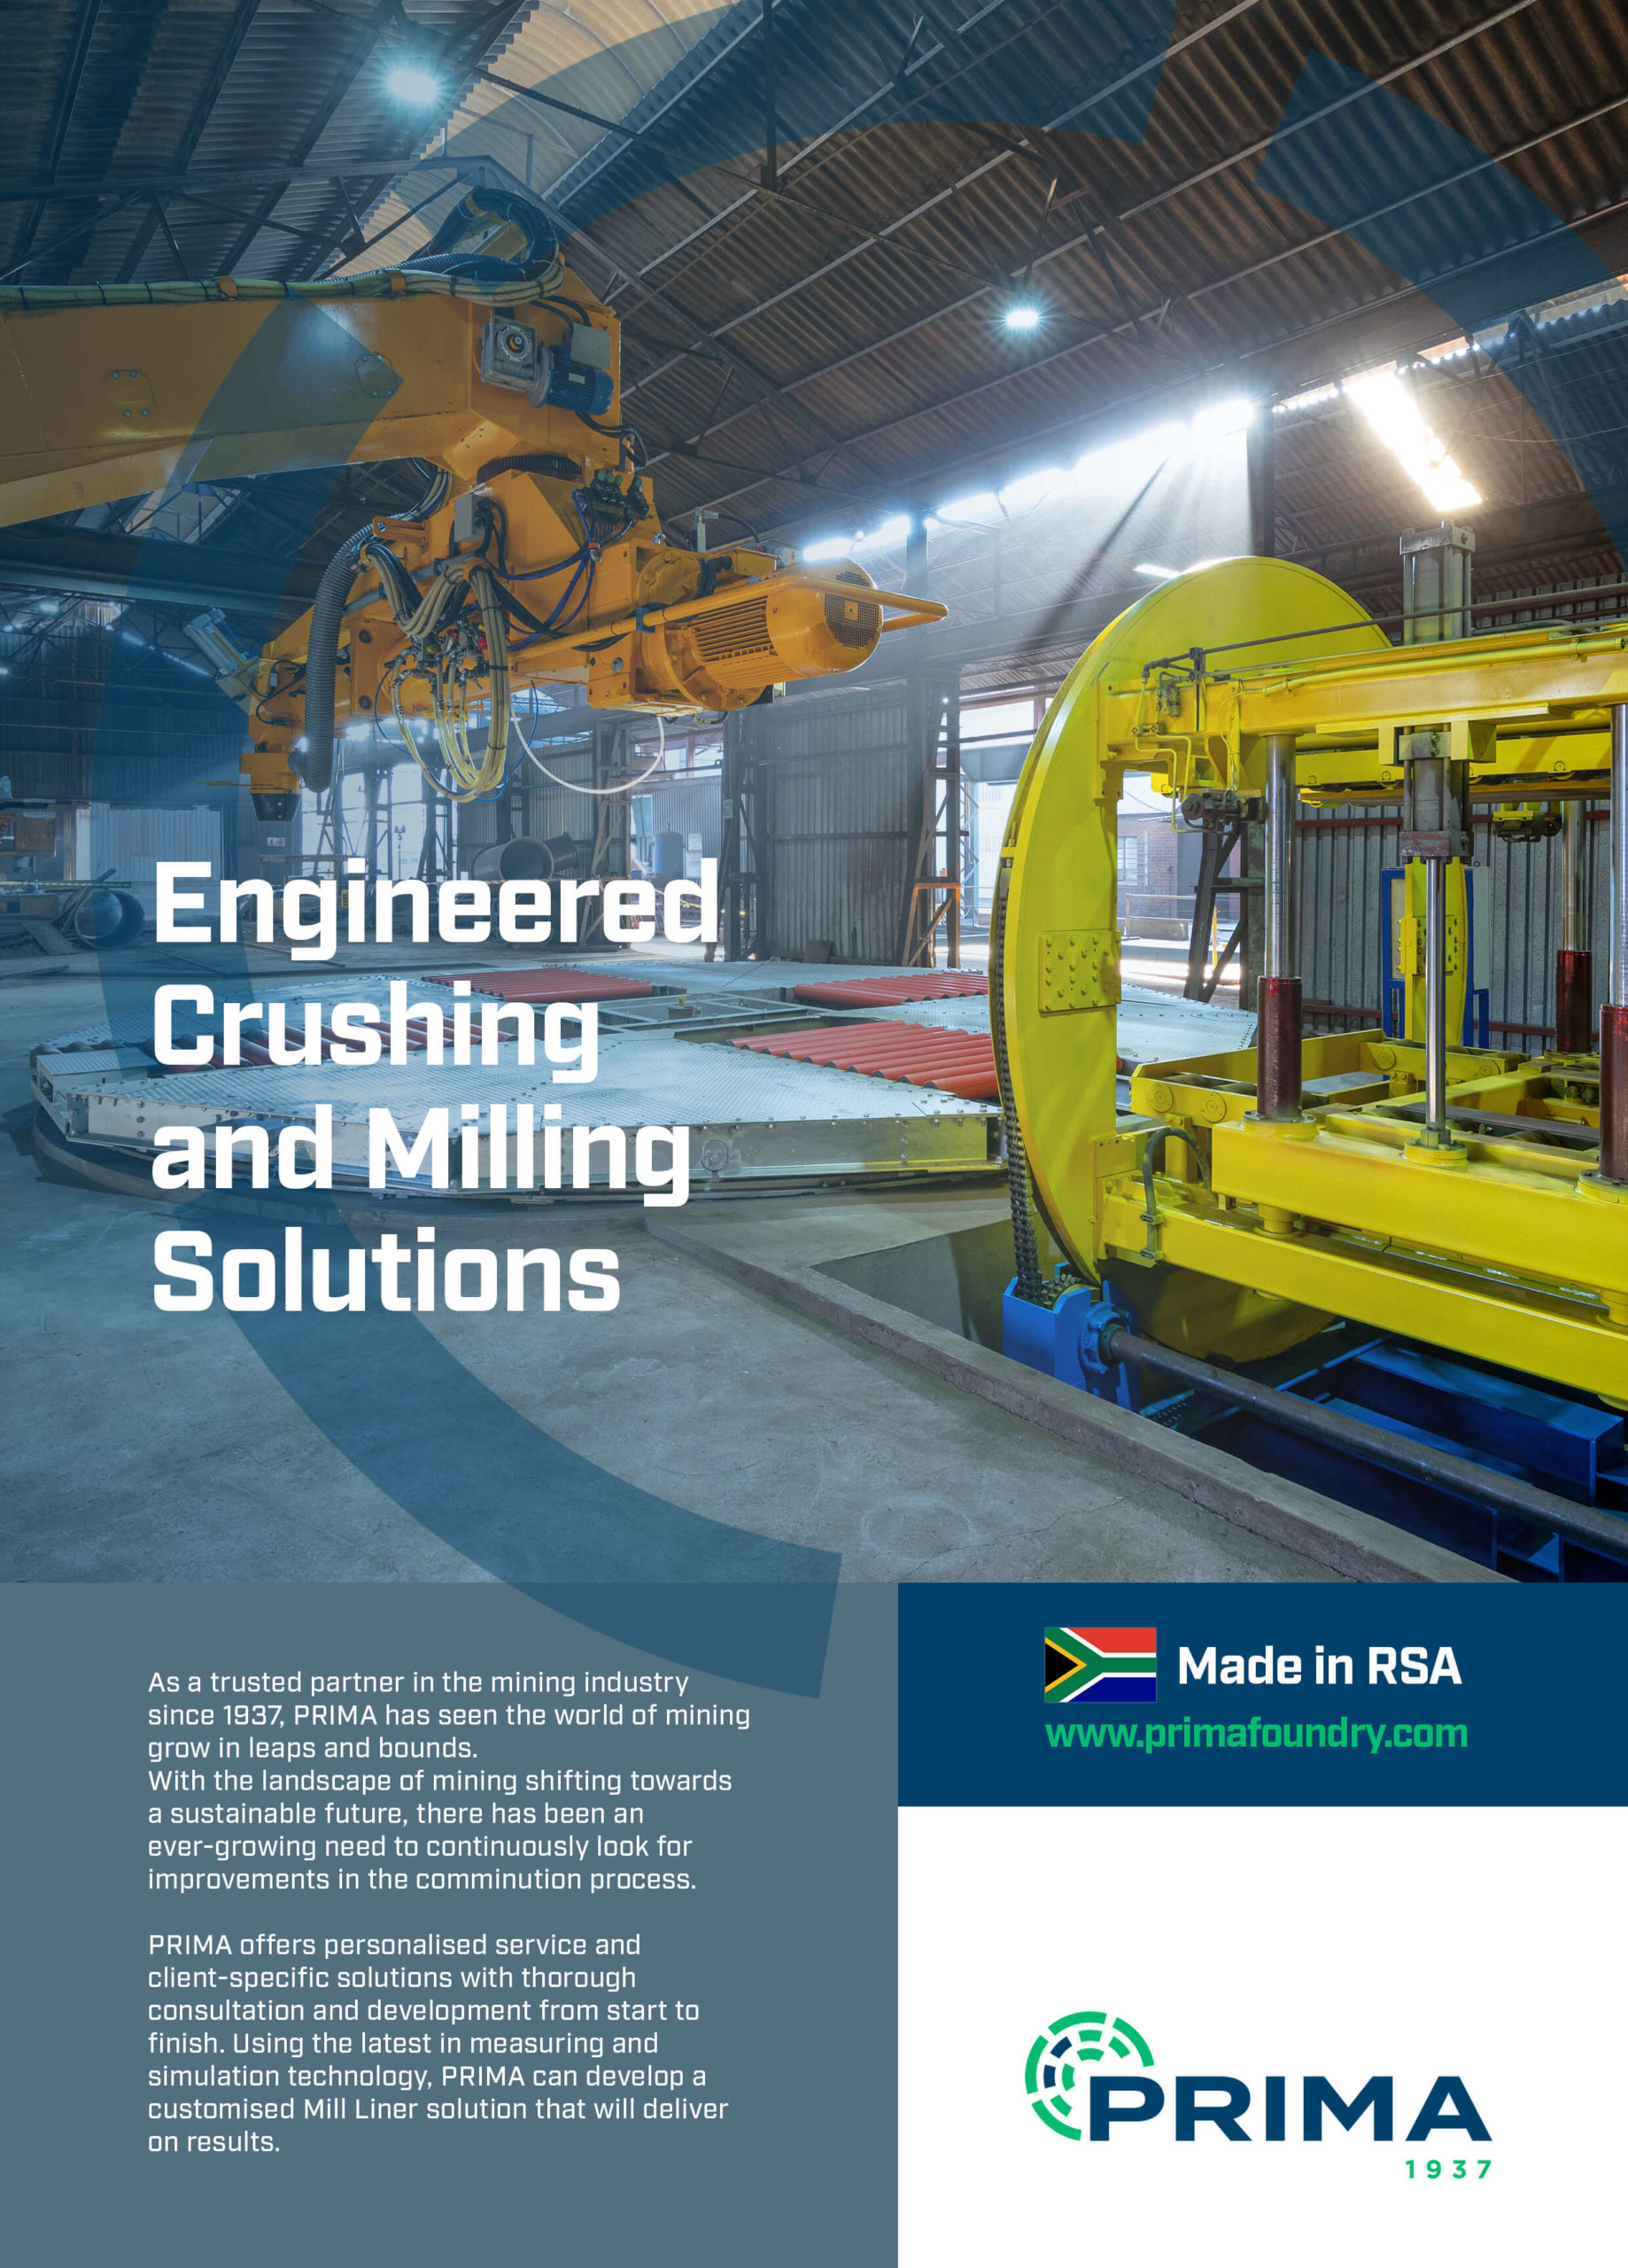 PRIMA Engineered Crushing and Milling Solutions